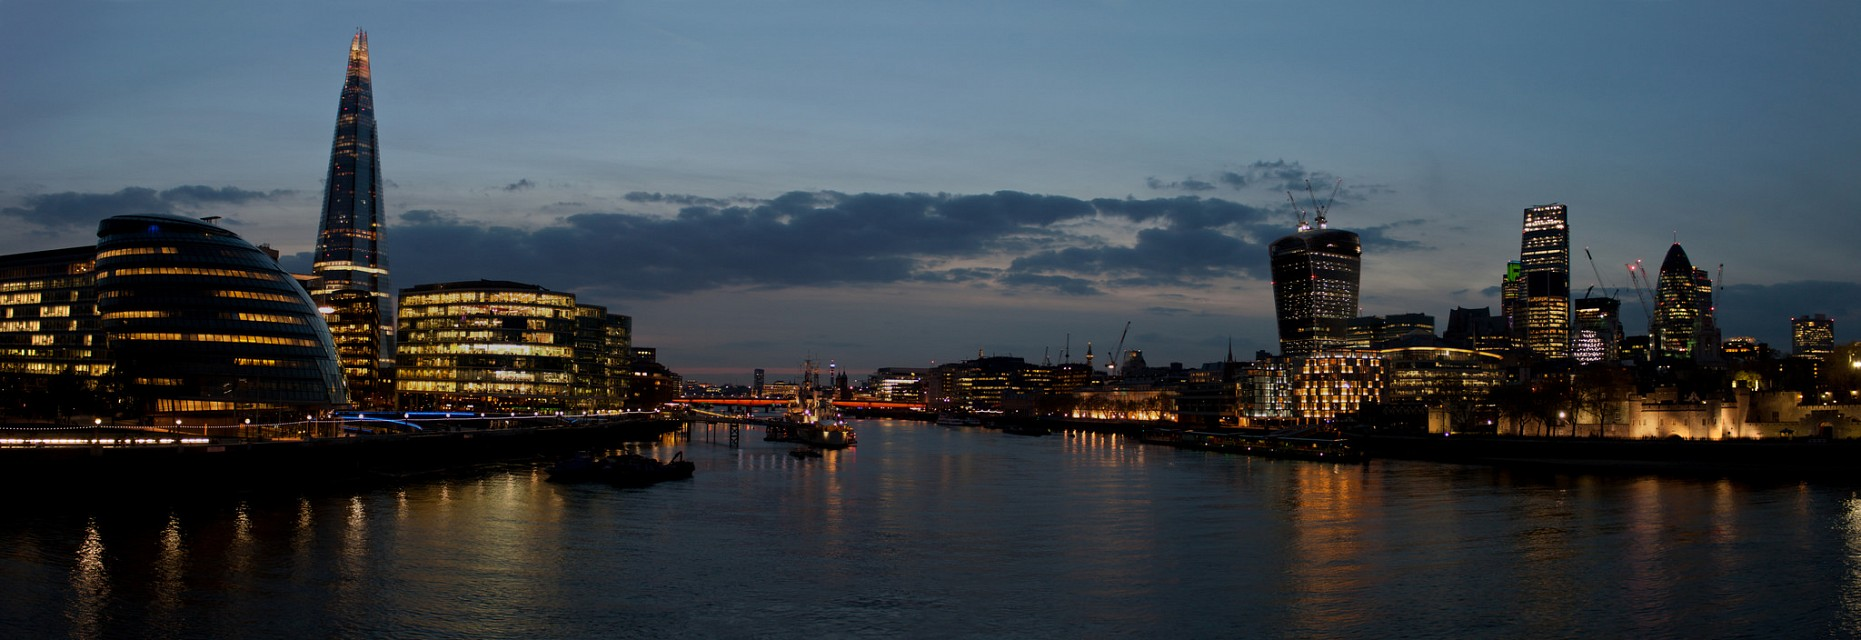 UK, London - Panoramic from Tower Bridge during blue hour - London